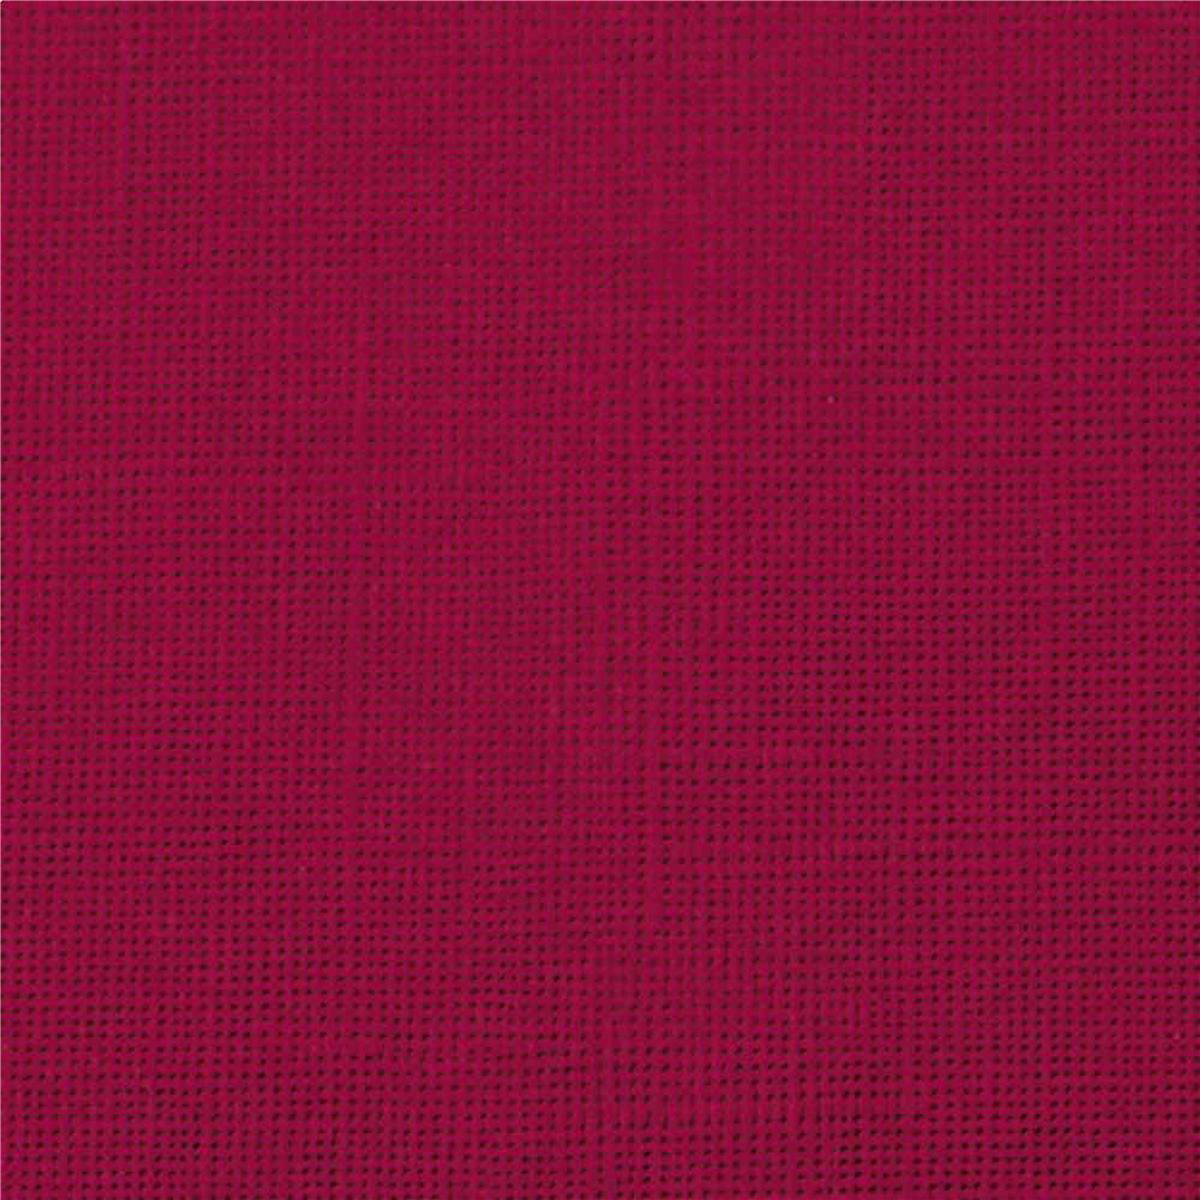 GBC Binding Covers Textured Linen Look 250gsm A4 Red Ref CE050030 Pack 100